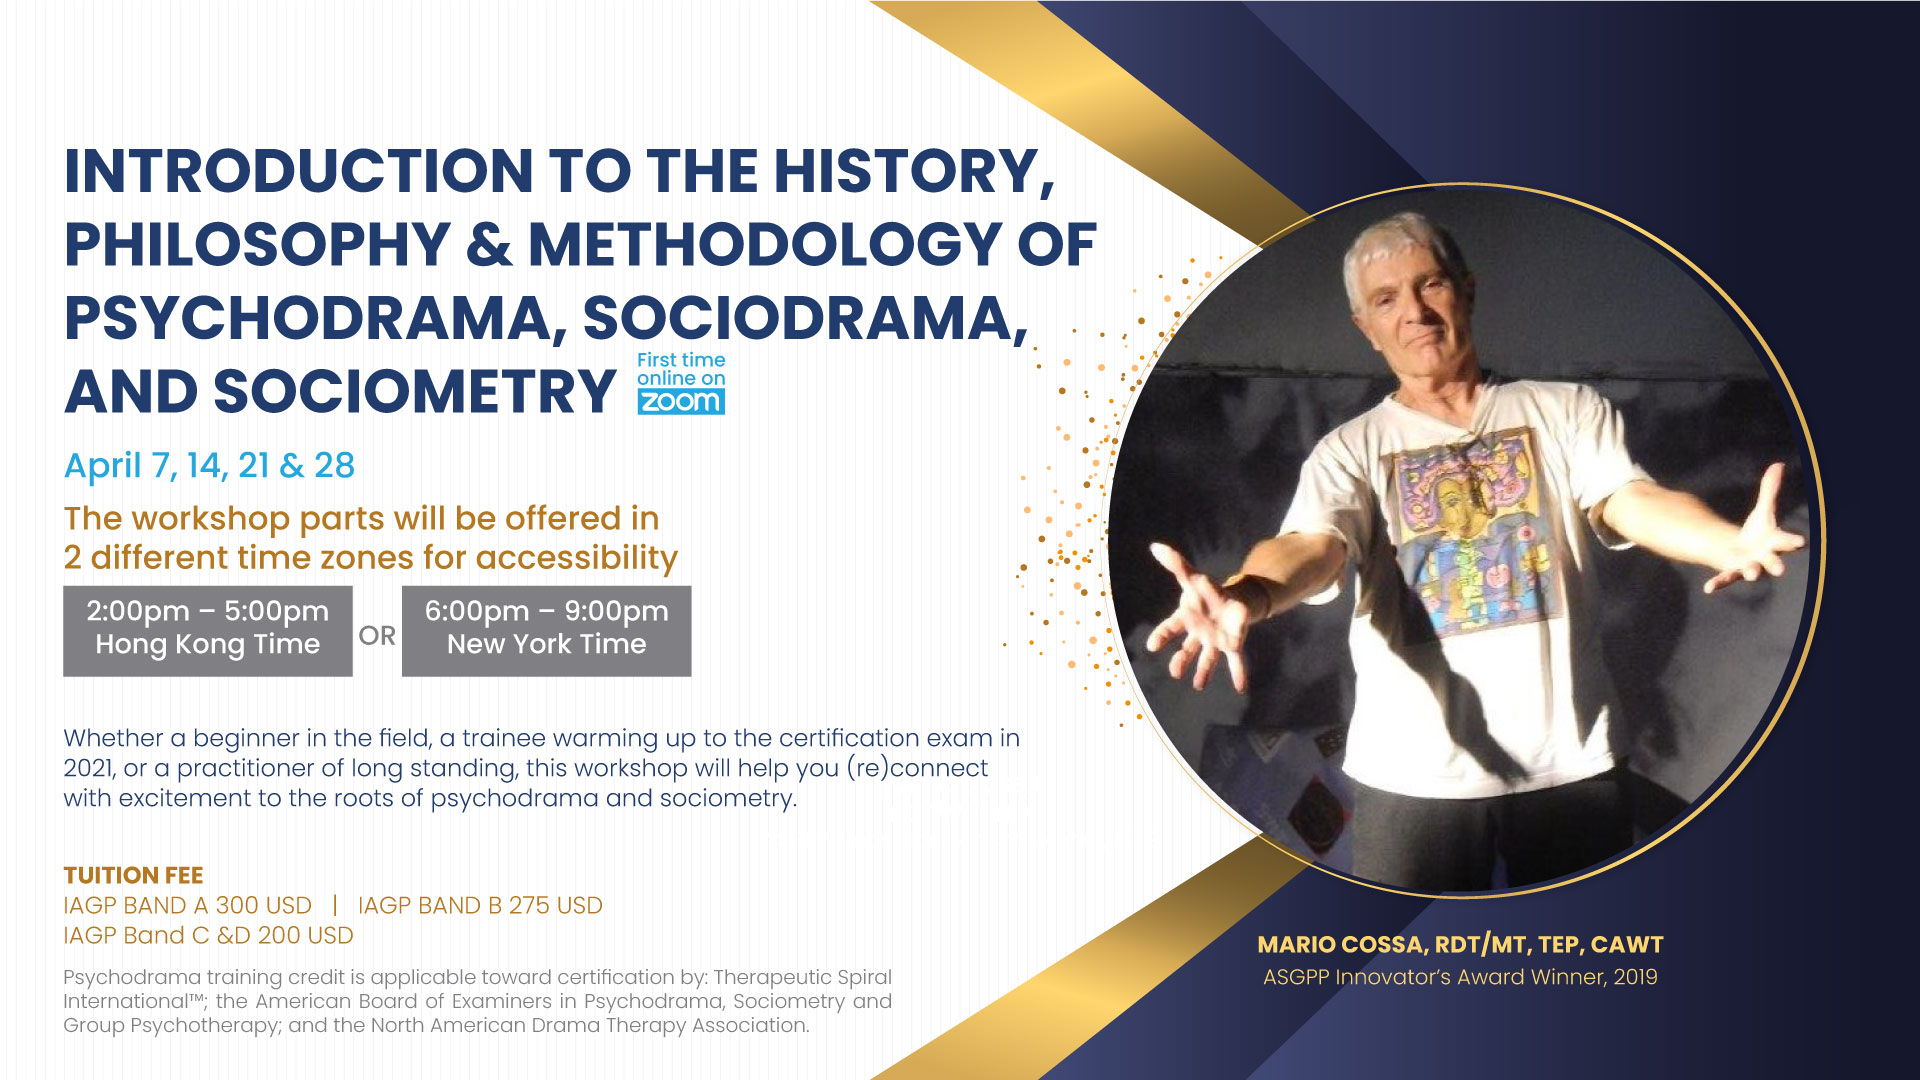 Intro to History, Philosophy & Methodology of Psychodrama, Sociometry & Group Psychotherapy